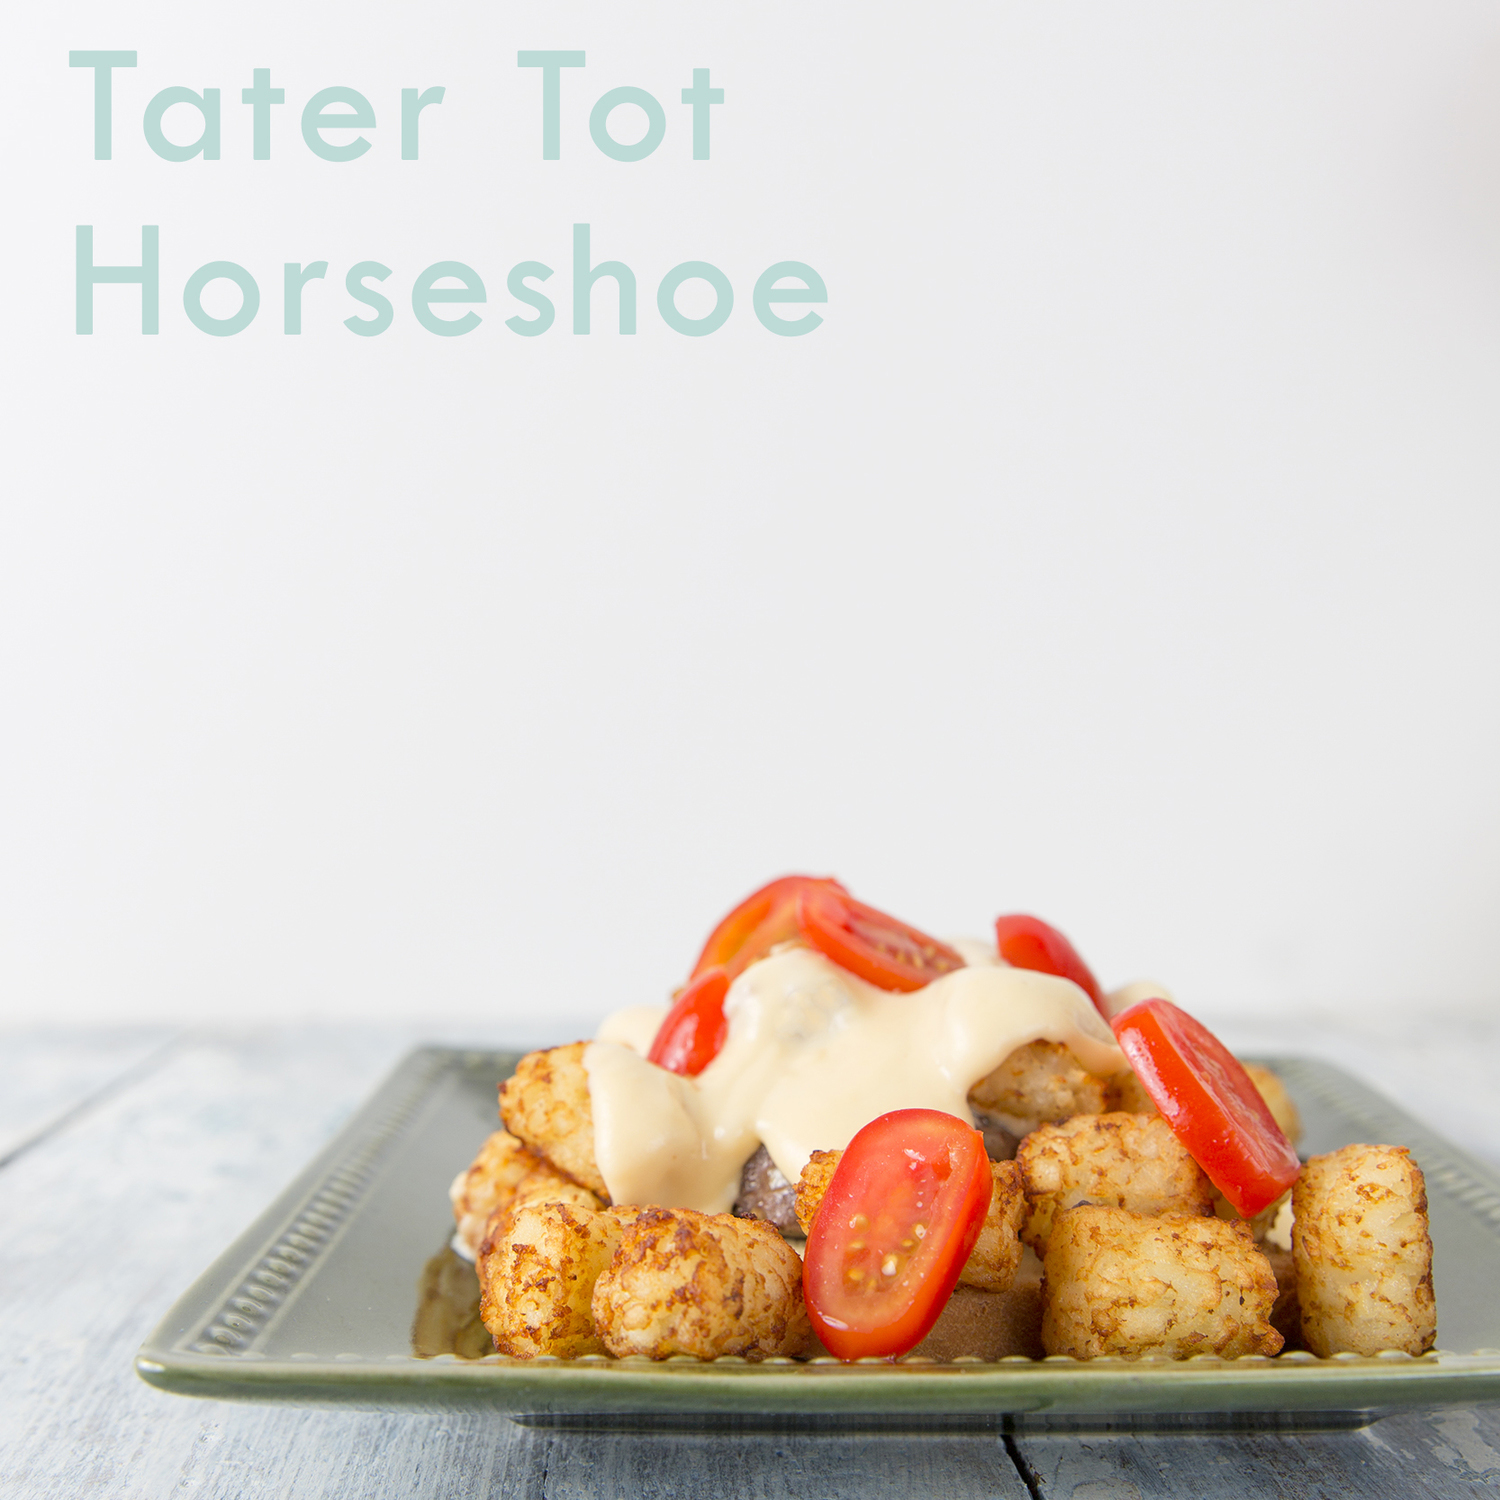 Tater Tot Horseshoe Sandwiches   Mar 3, 2015